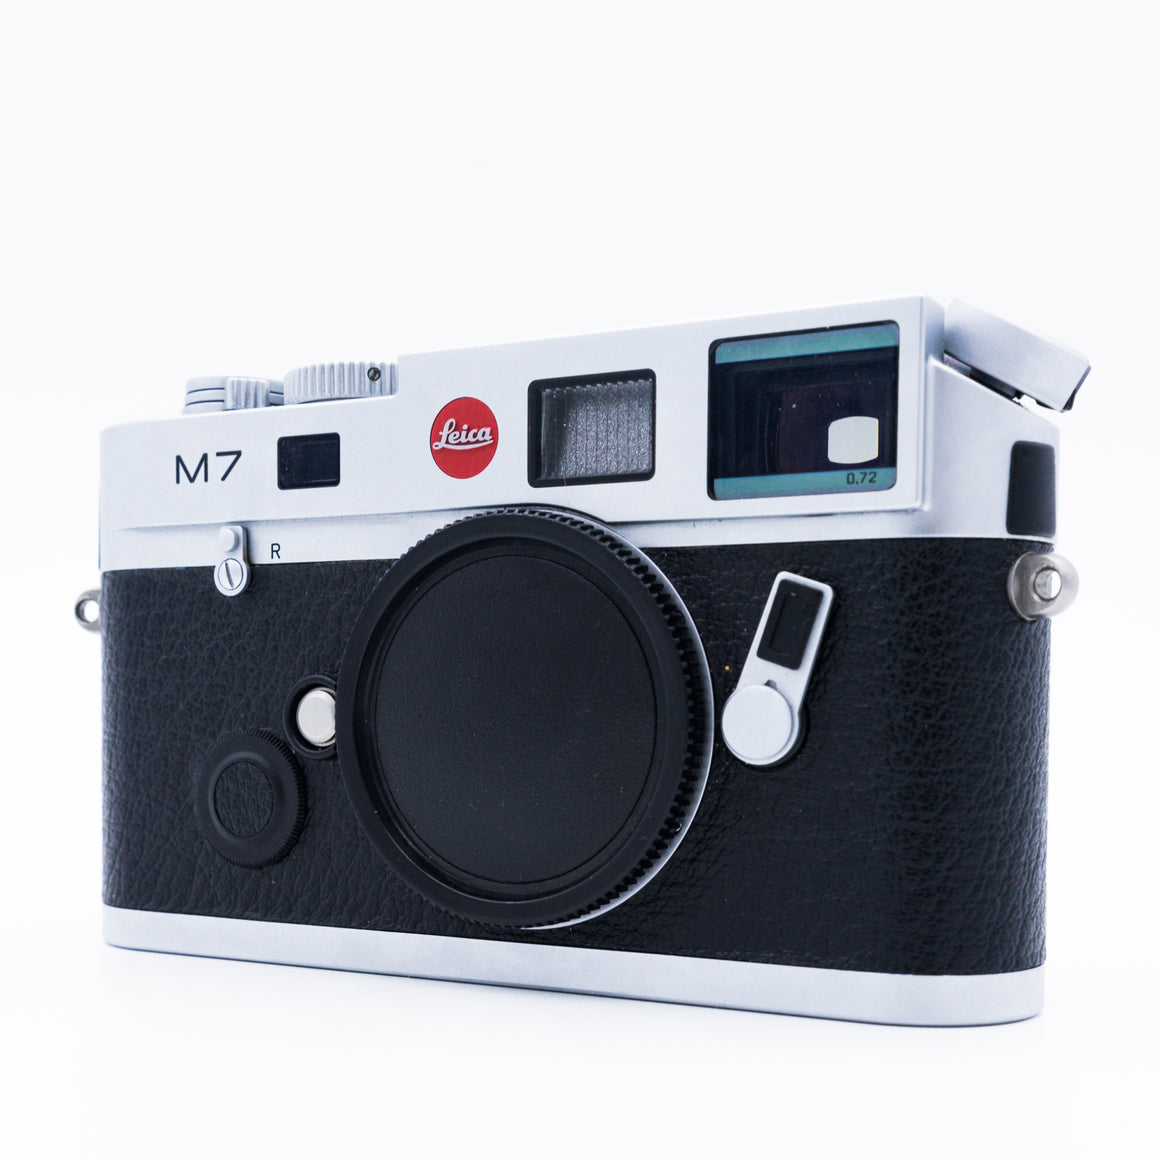 LEICA M7 Rangefinder camera with 35mm f2 lens